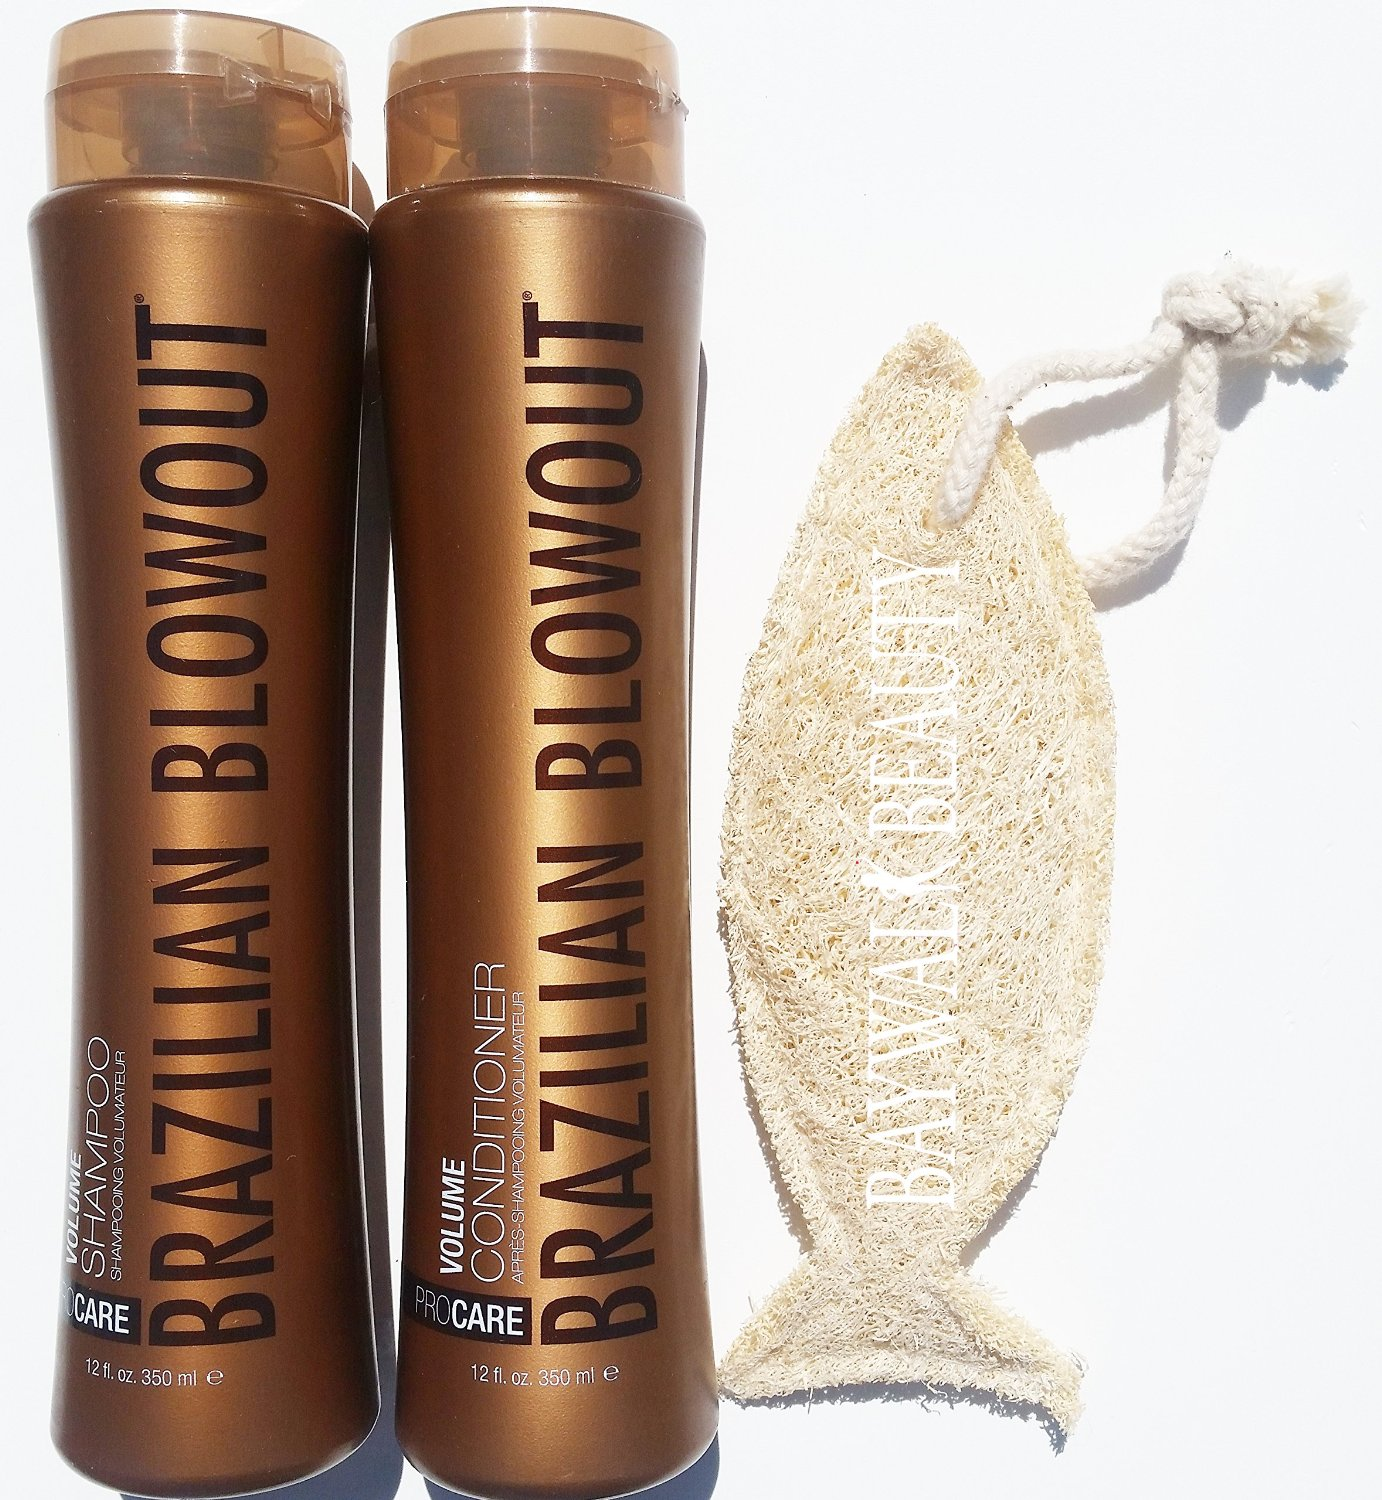 Brazilian Blowout PROCARE Volume Shampoo & Conditioner 350ml/12oz Duo Set With FREE Natural Loofah (Shapes May Vary)